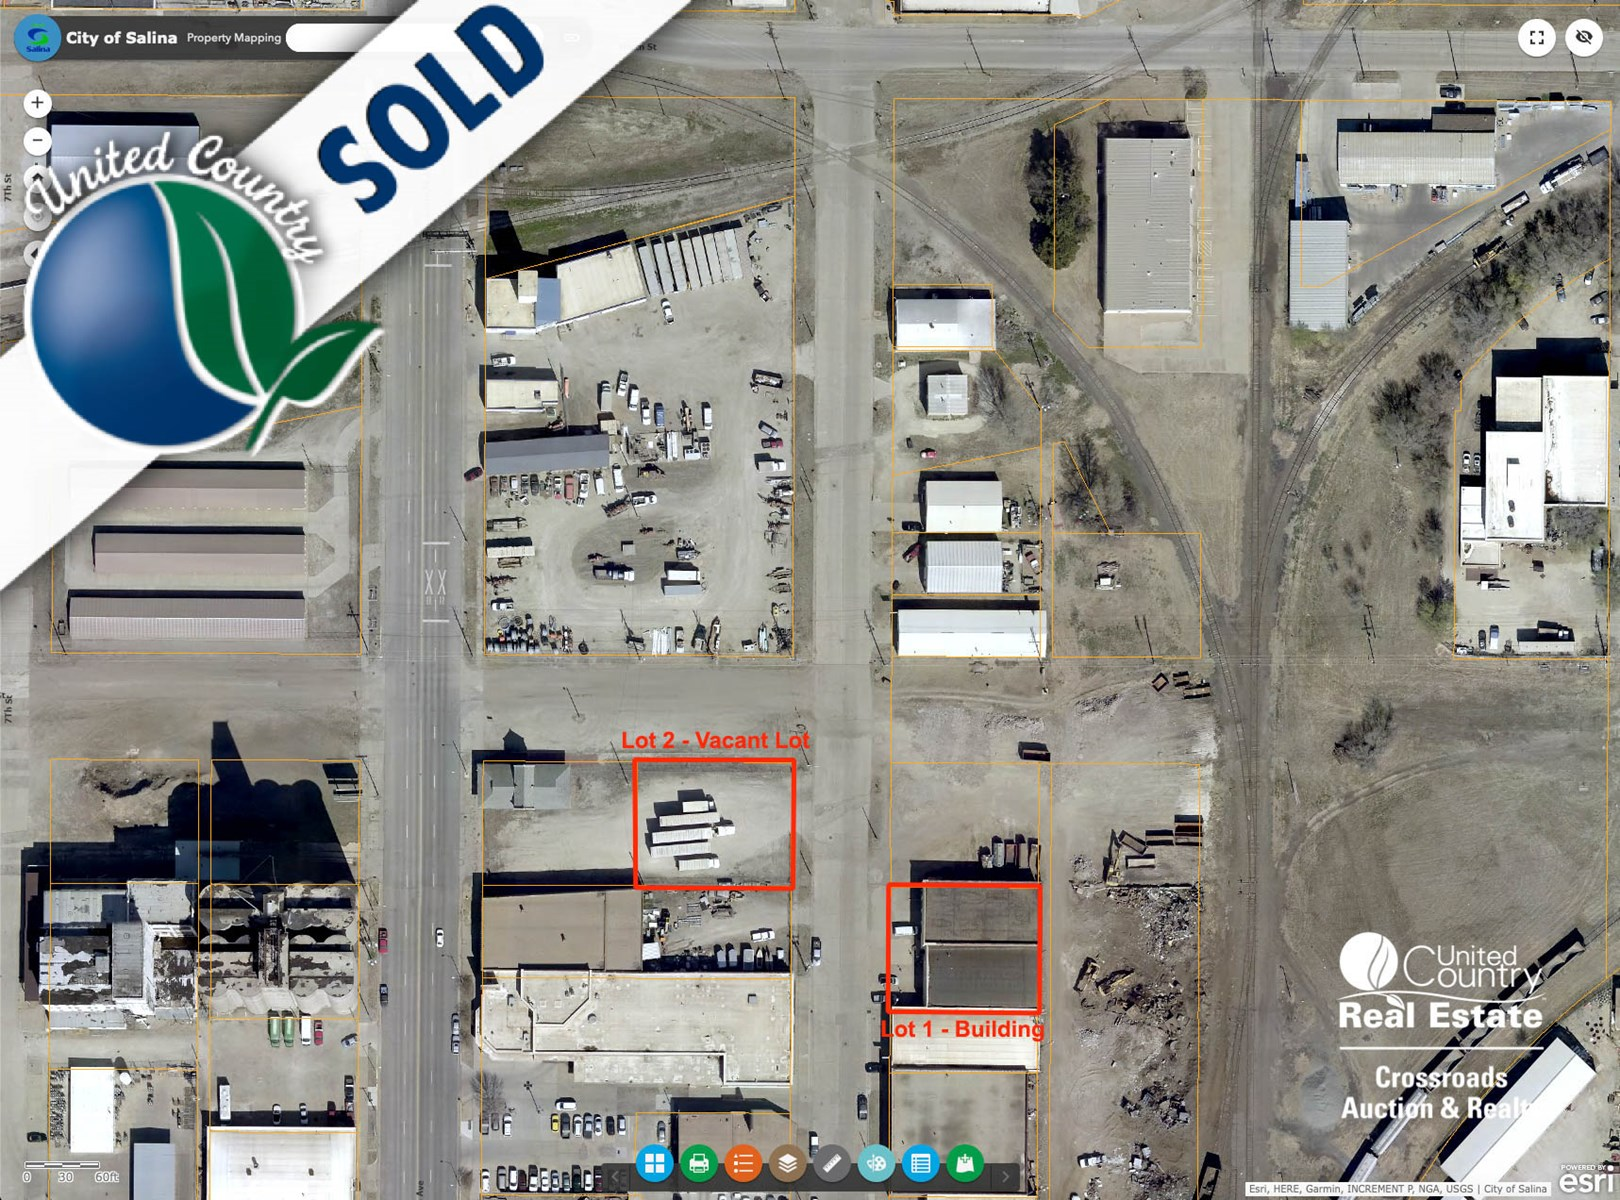 Vacant Commercial Building Lot in Salina, Kansas